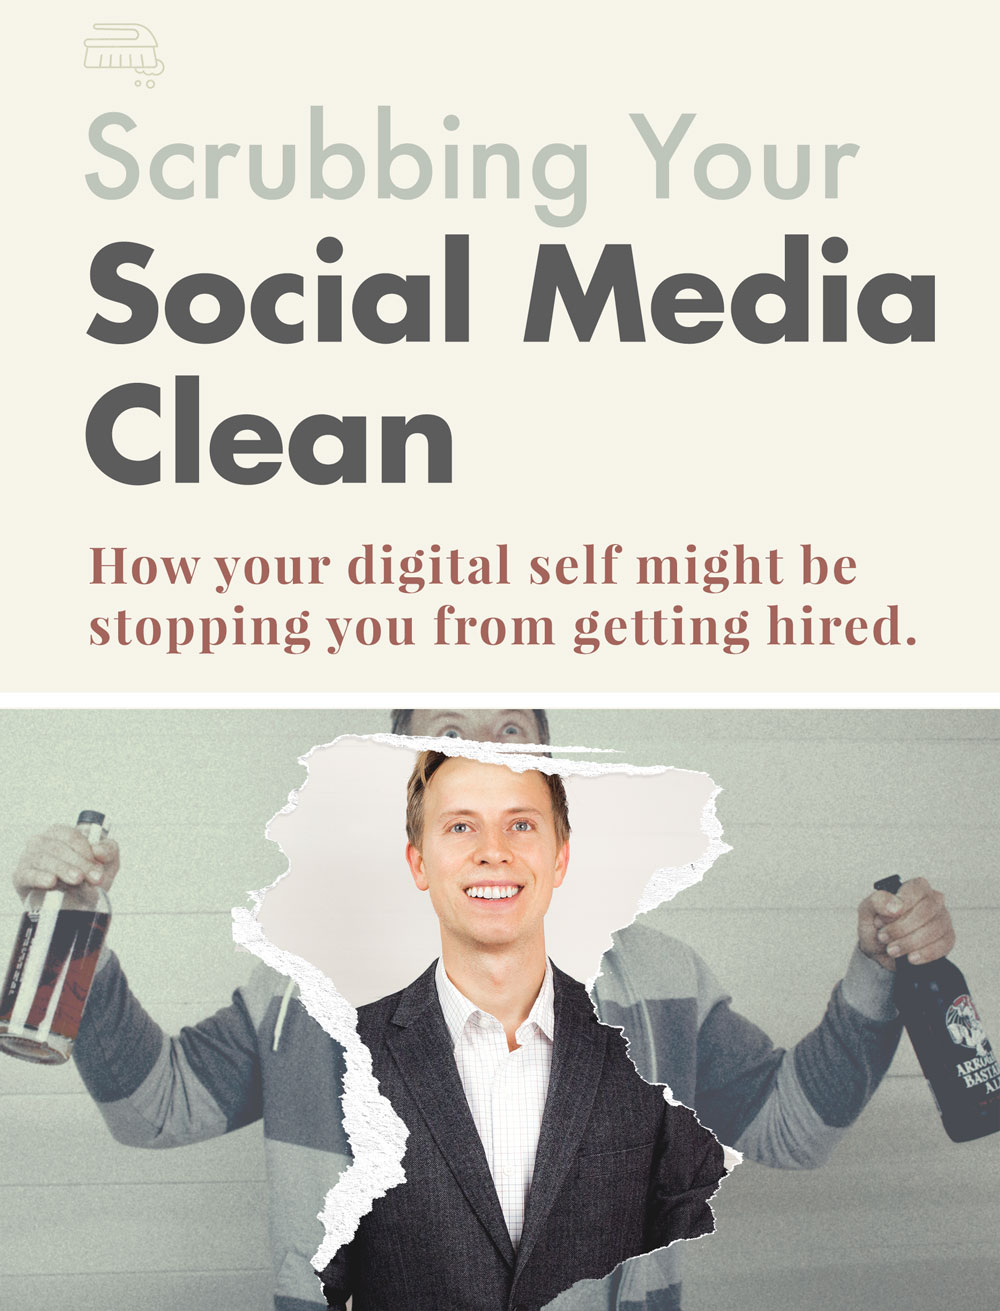 Scrubbing Your Social Media Clean